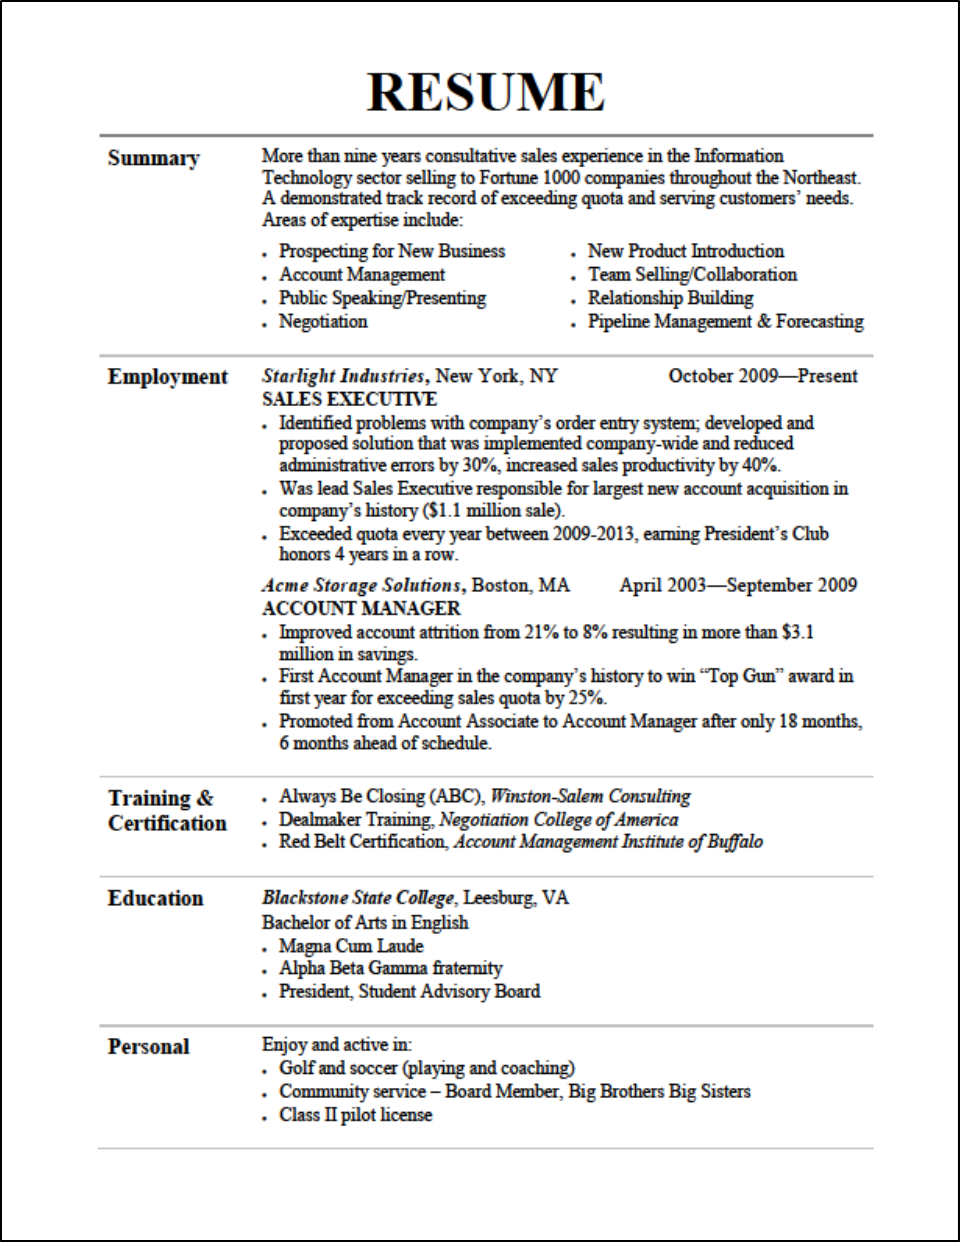 8 Tips to Make Your Resume Stand Out Job resume examples